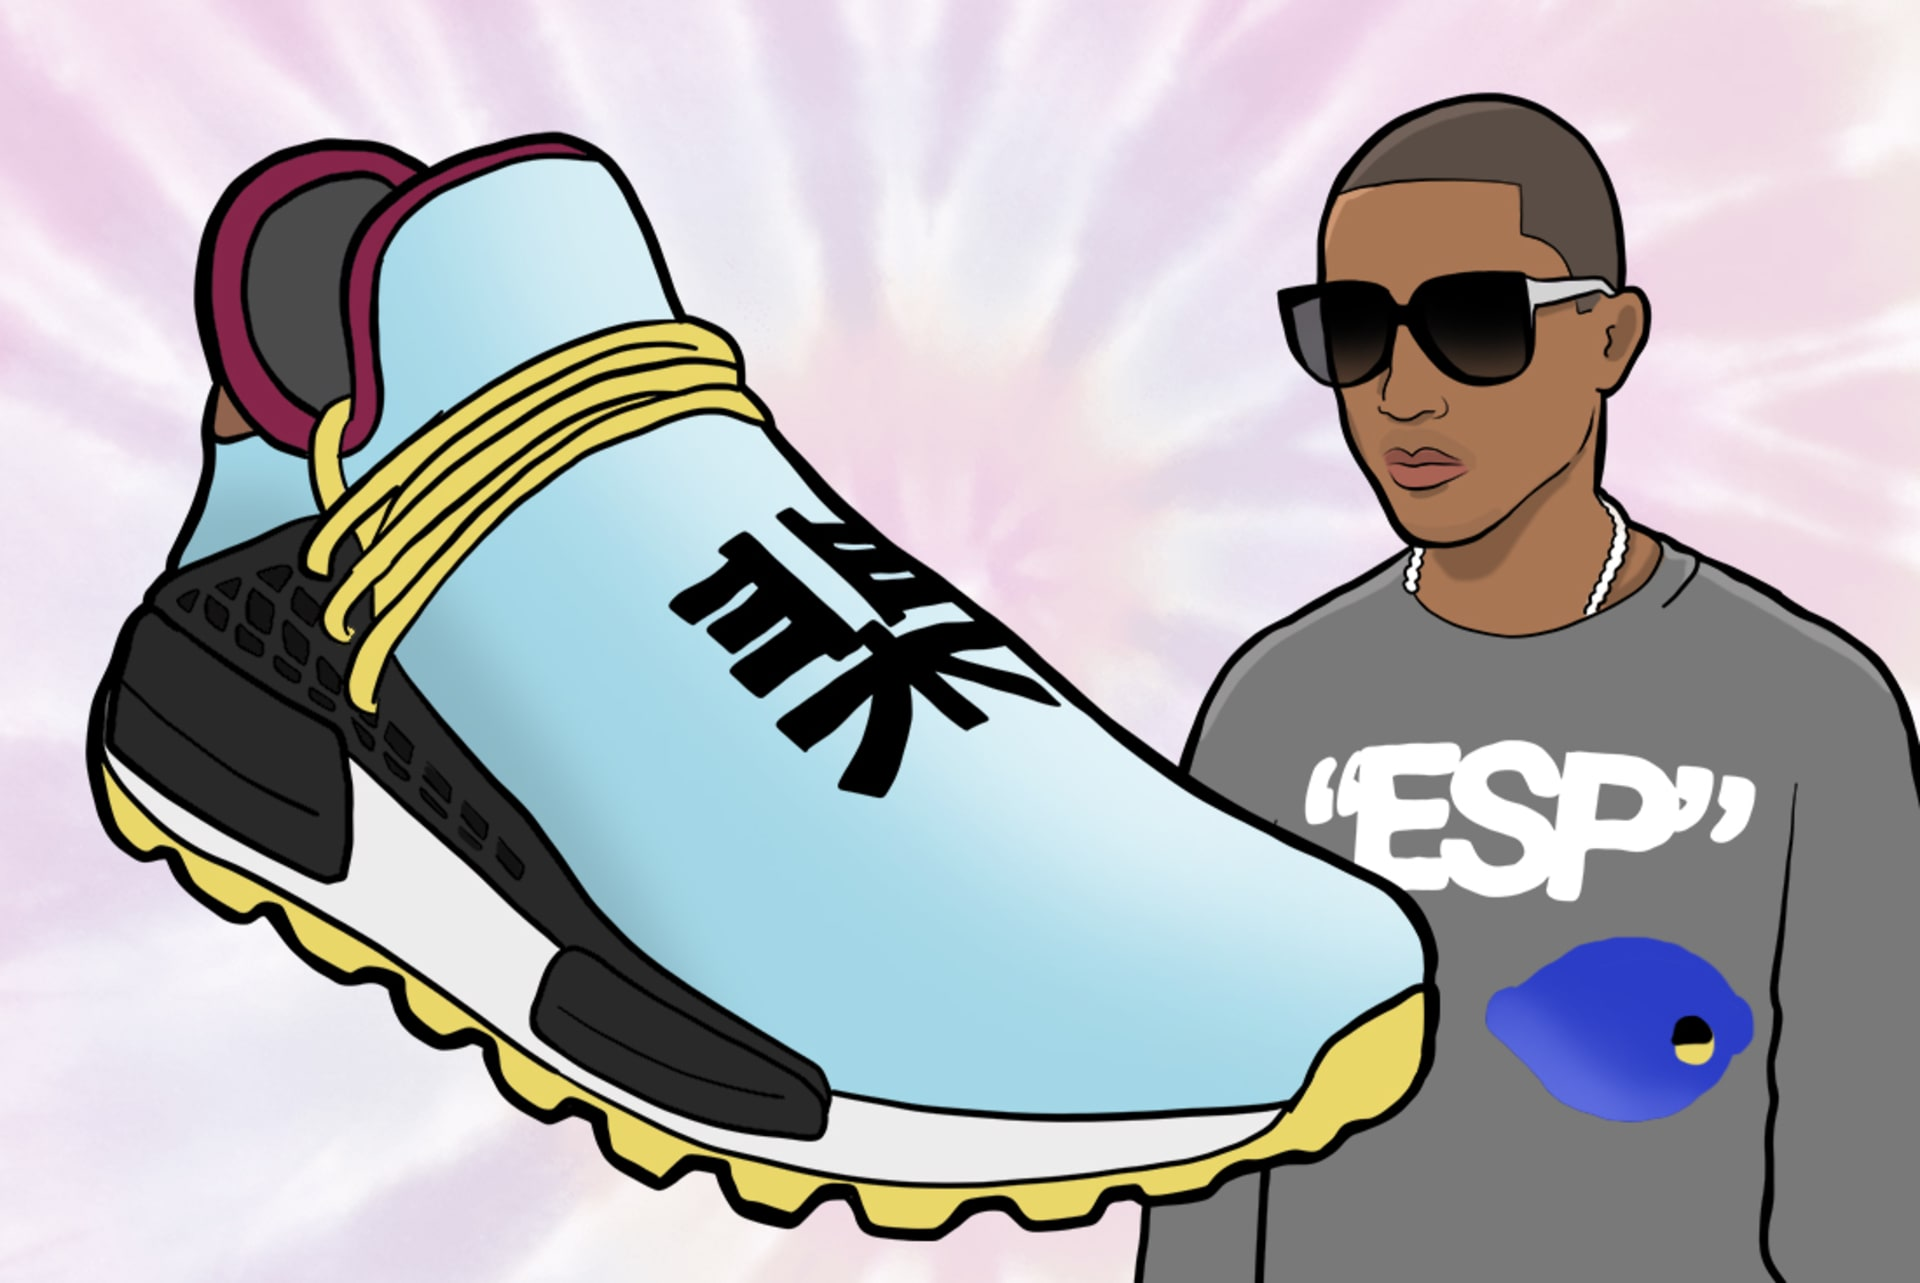 14ace2e30 The Most Influential Celebrities in Sneaker Culture Right Now